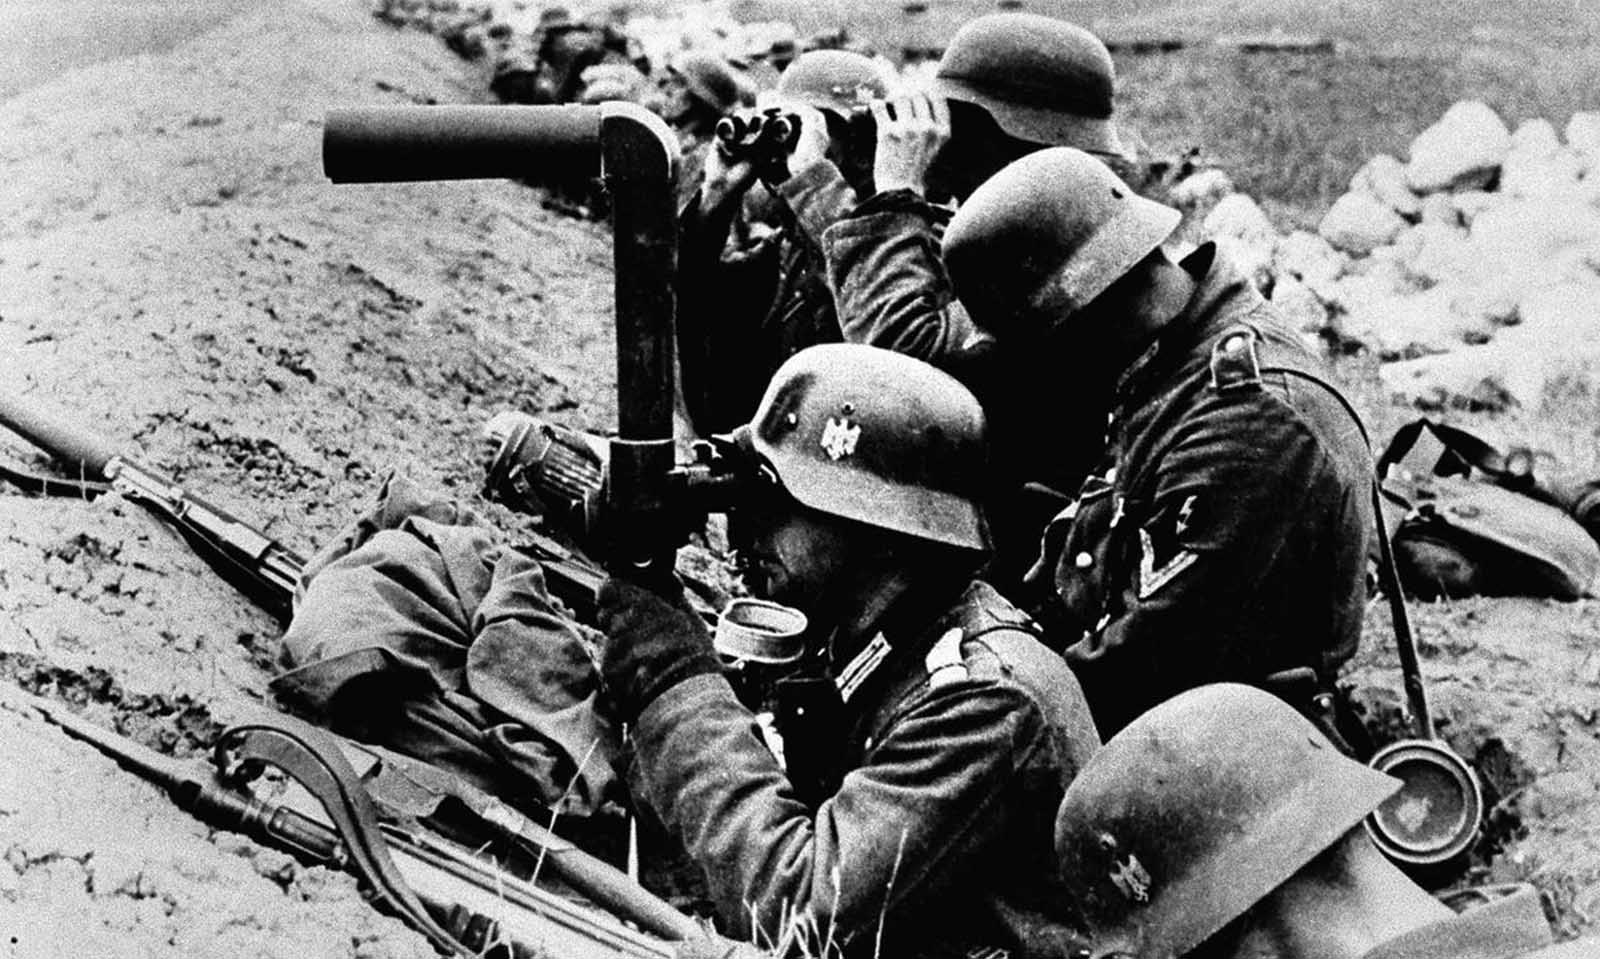 German infantrymen watch enemy movements from their trenches shortly before an advance inside Soviet territory, on July 10, 1941.